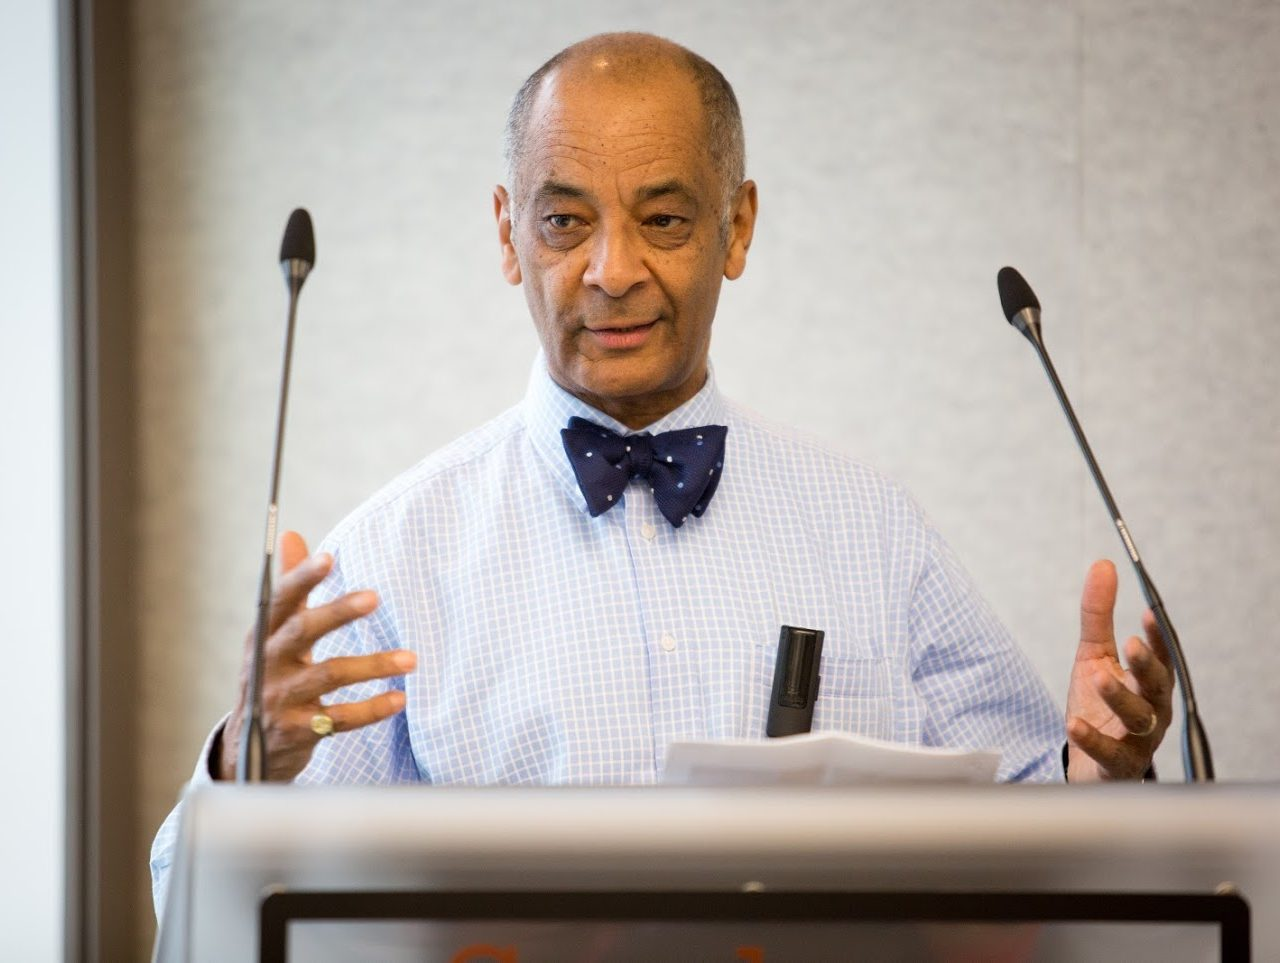 LTSB- Sir Kenneth Olisa OBE